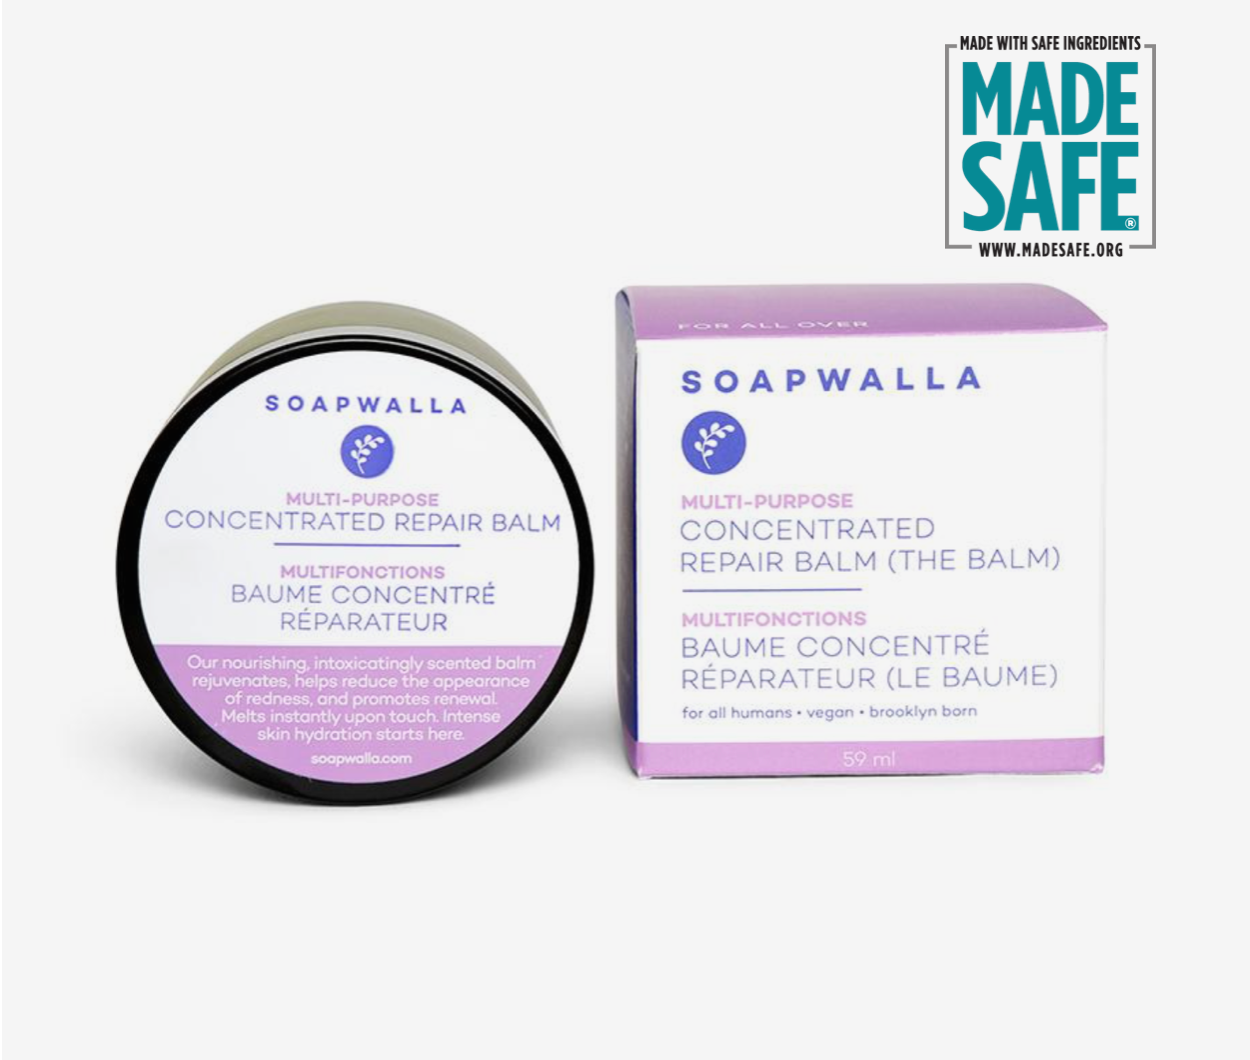 Soapwalla Concentrated Repair Balm